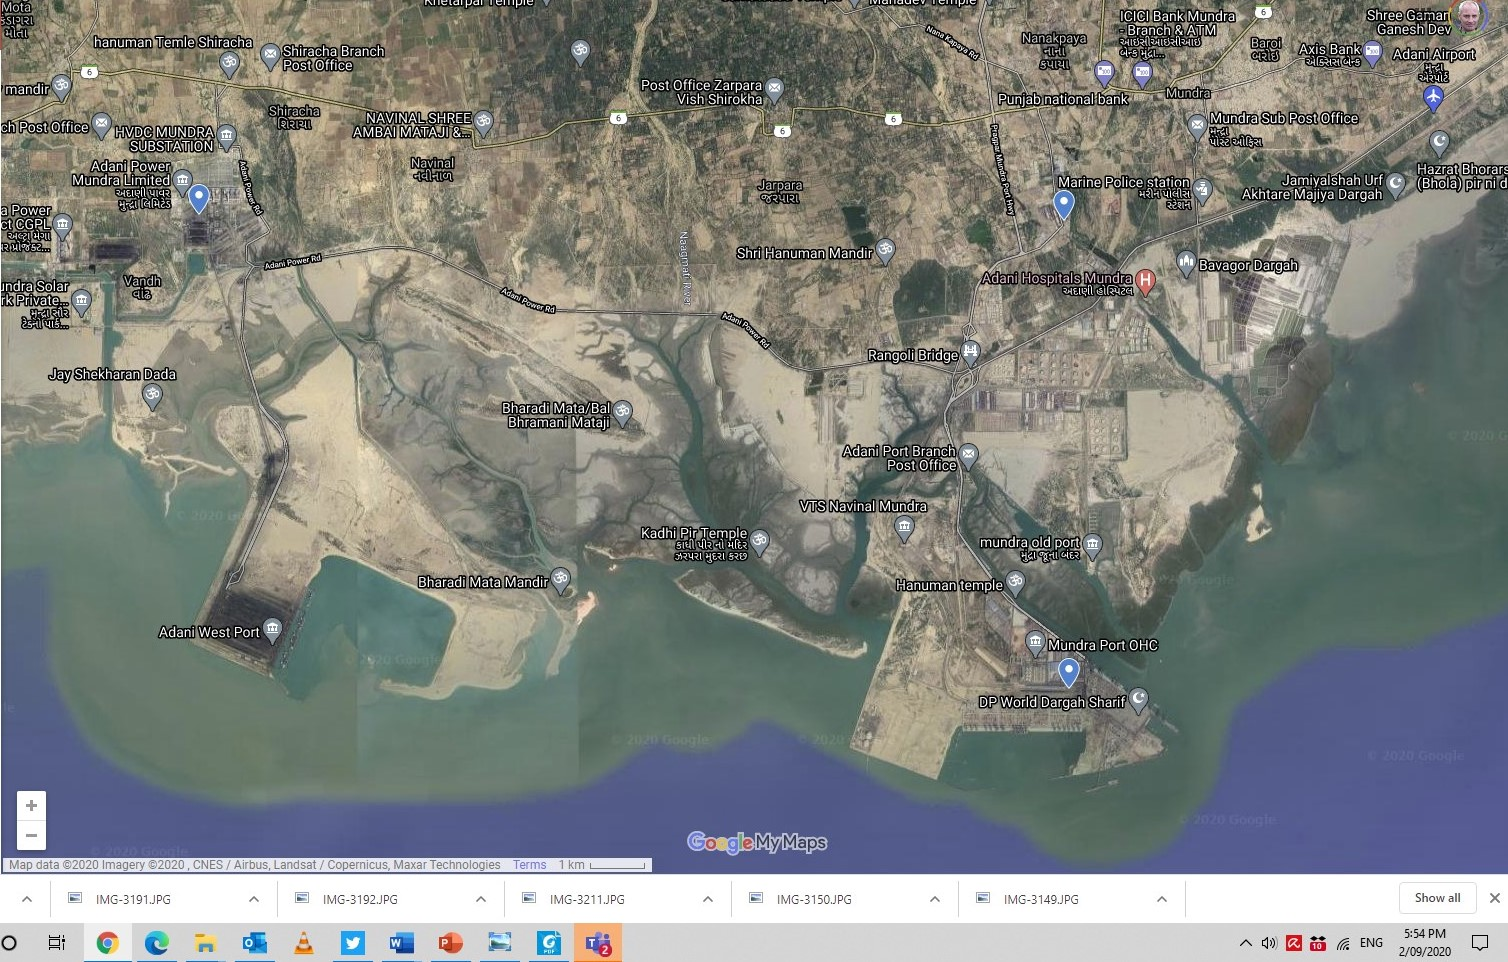 Aerial image of Adani's Mundra port and industrial complex. Photo by Google